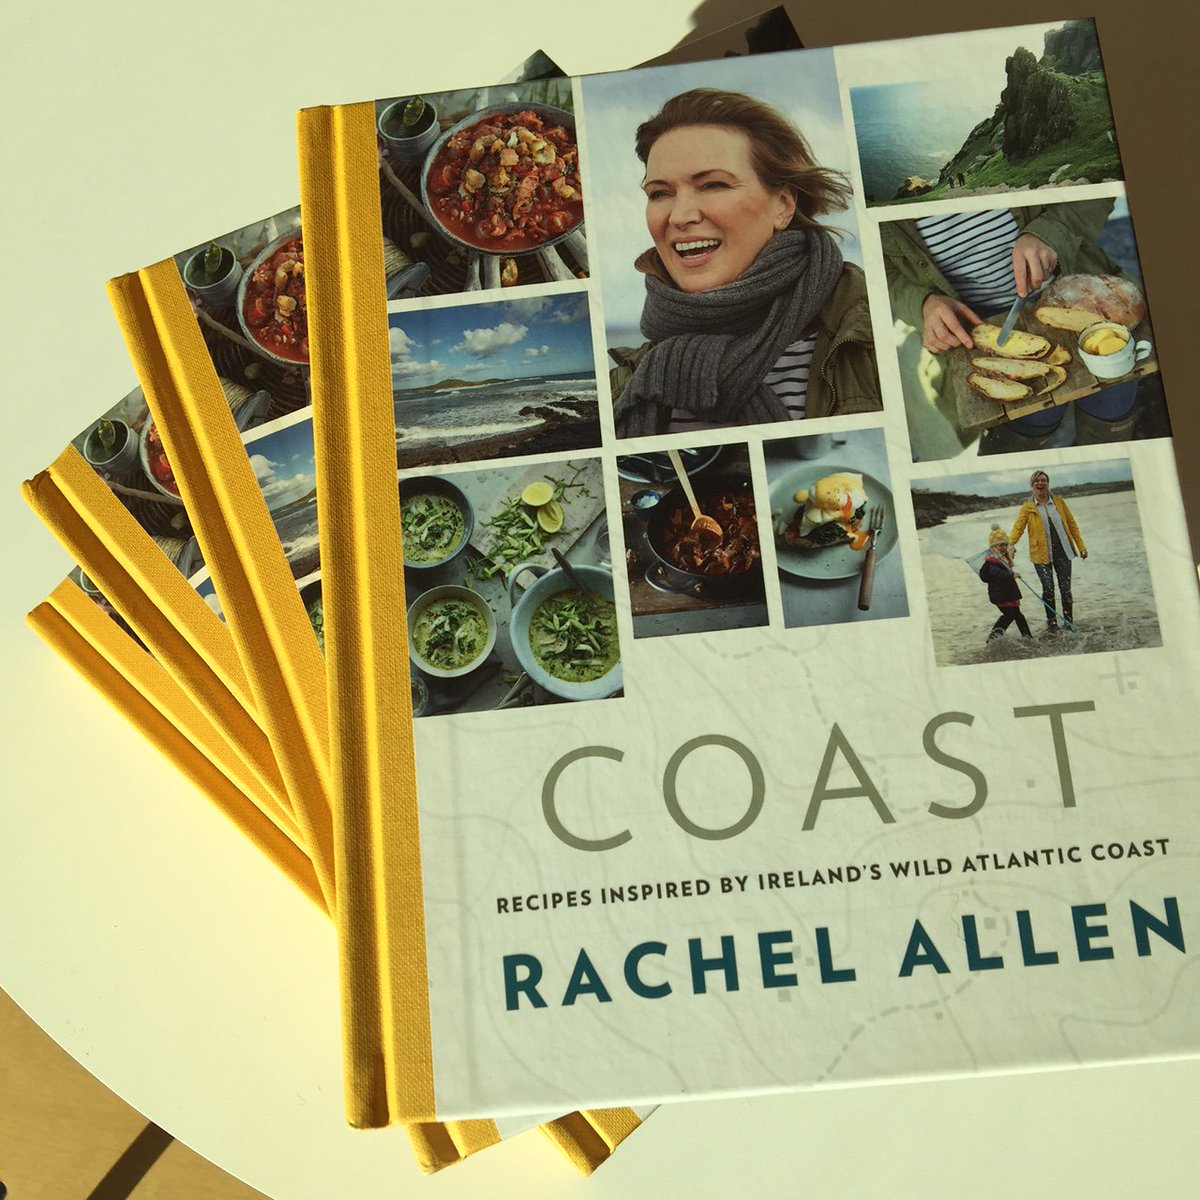 #RachelsCoastalCooking starts Mon,7pm & we've 5 @RachelAllen COAST cookbooks to give away!Follow us & RT this to win https://t.co/qKjhDRAqeH